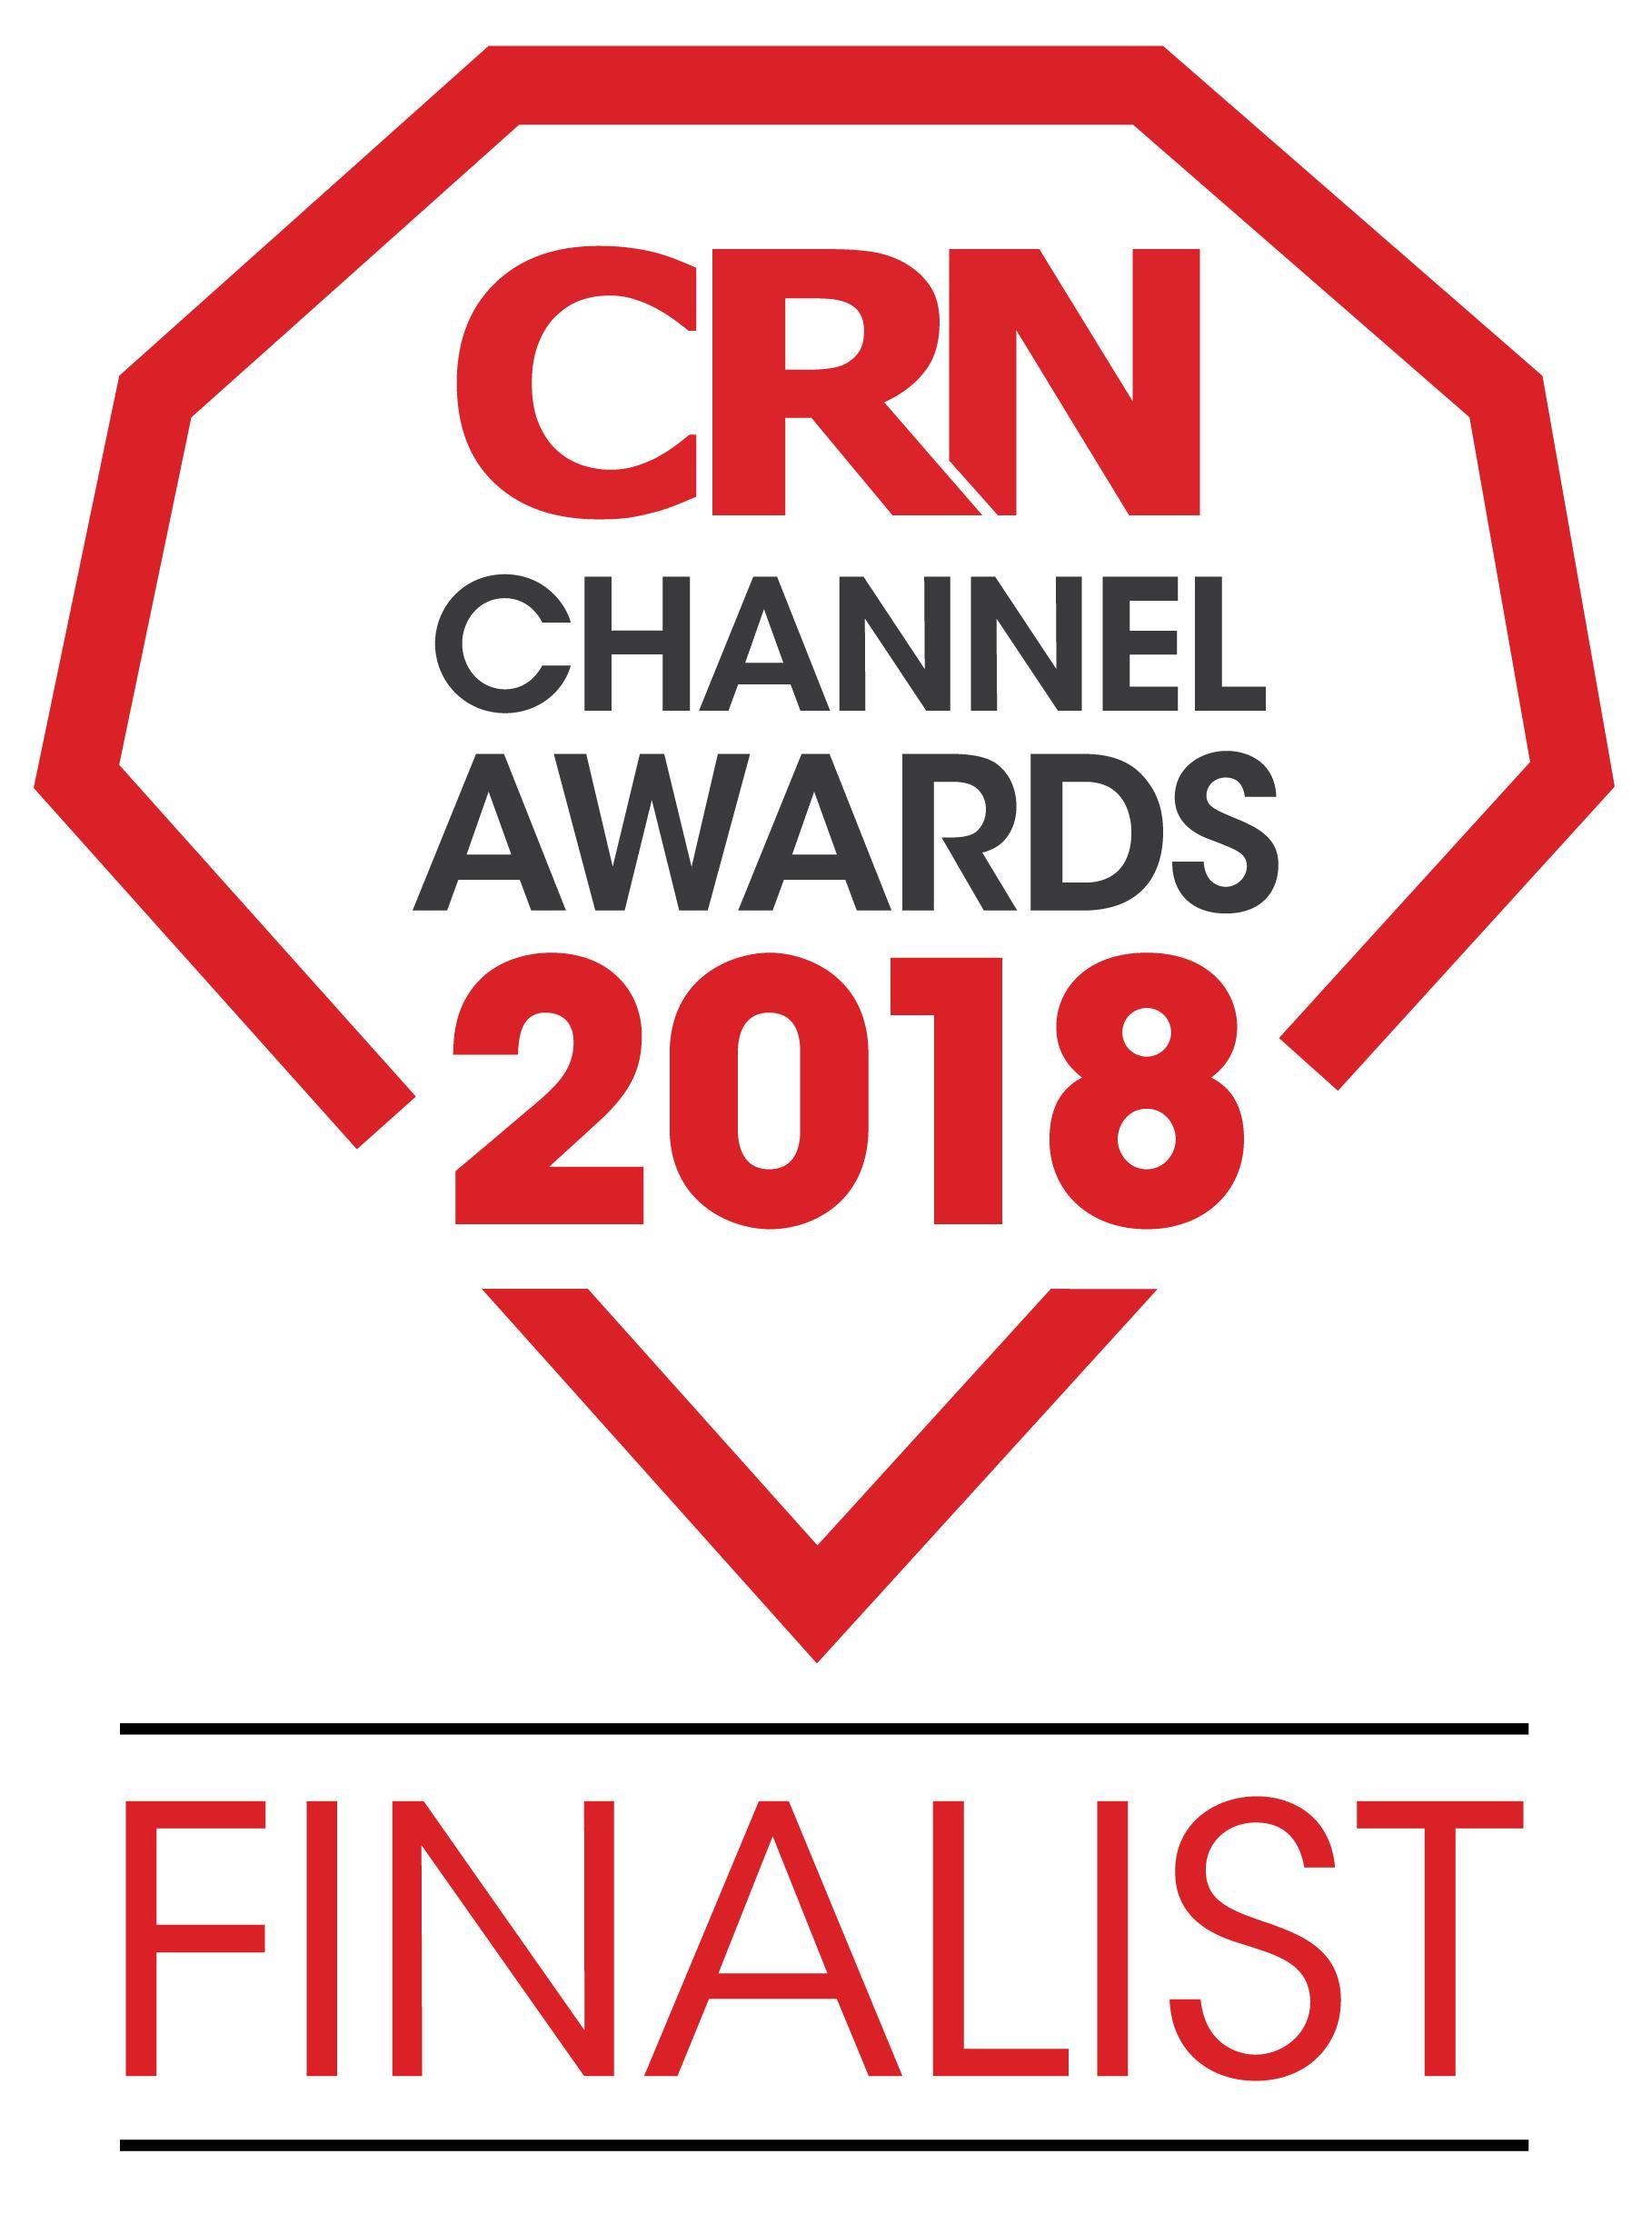 Egress Software Technologies shortlisted for the CRN Channel Awards 2018